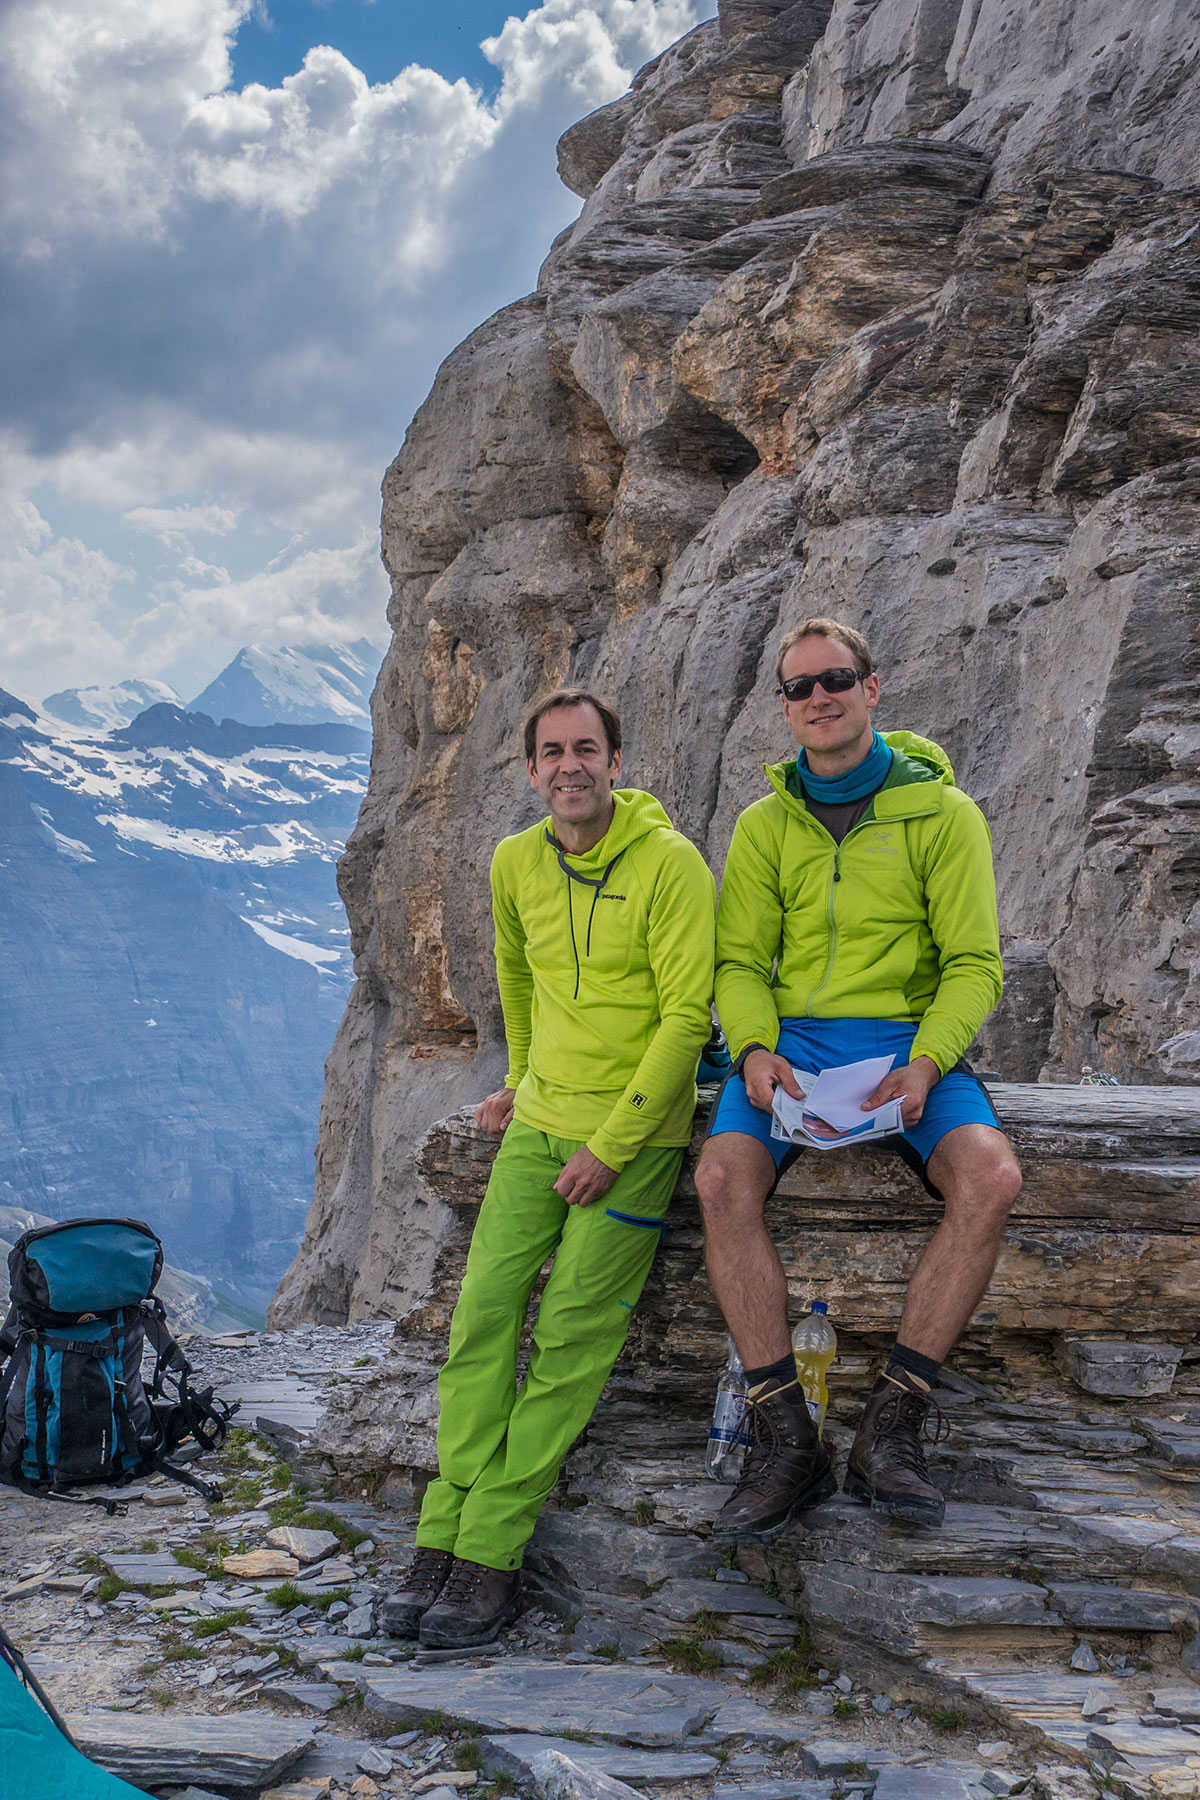 Mathias Weck and Felix Mehne after the ascent of Eiger north face on the route